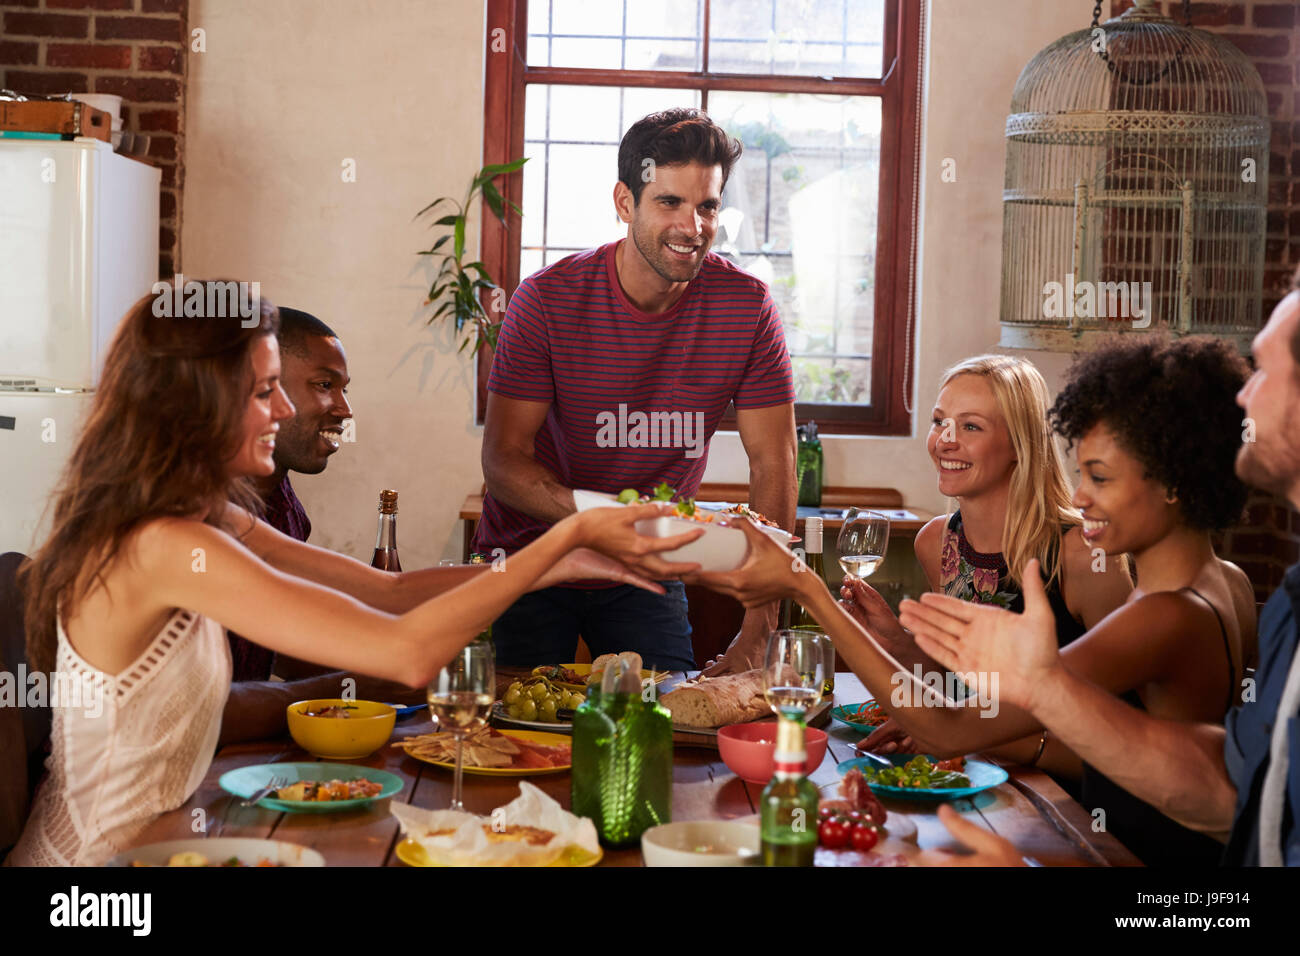 Host and friends pass food round the table at a dinner party - Stock Image